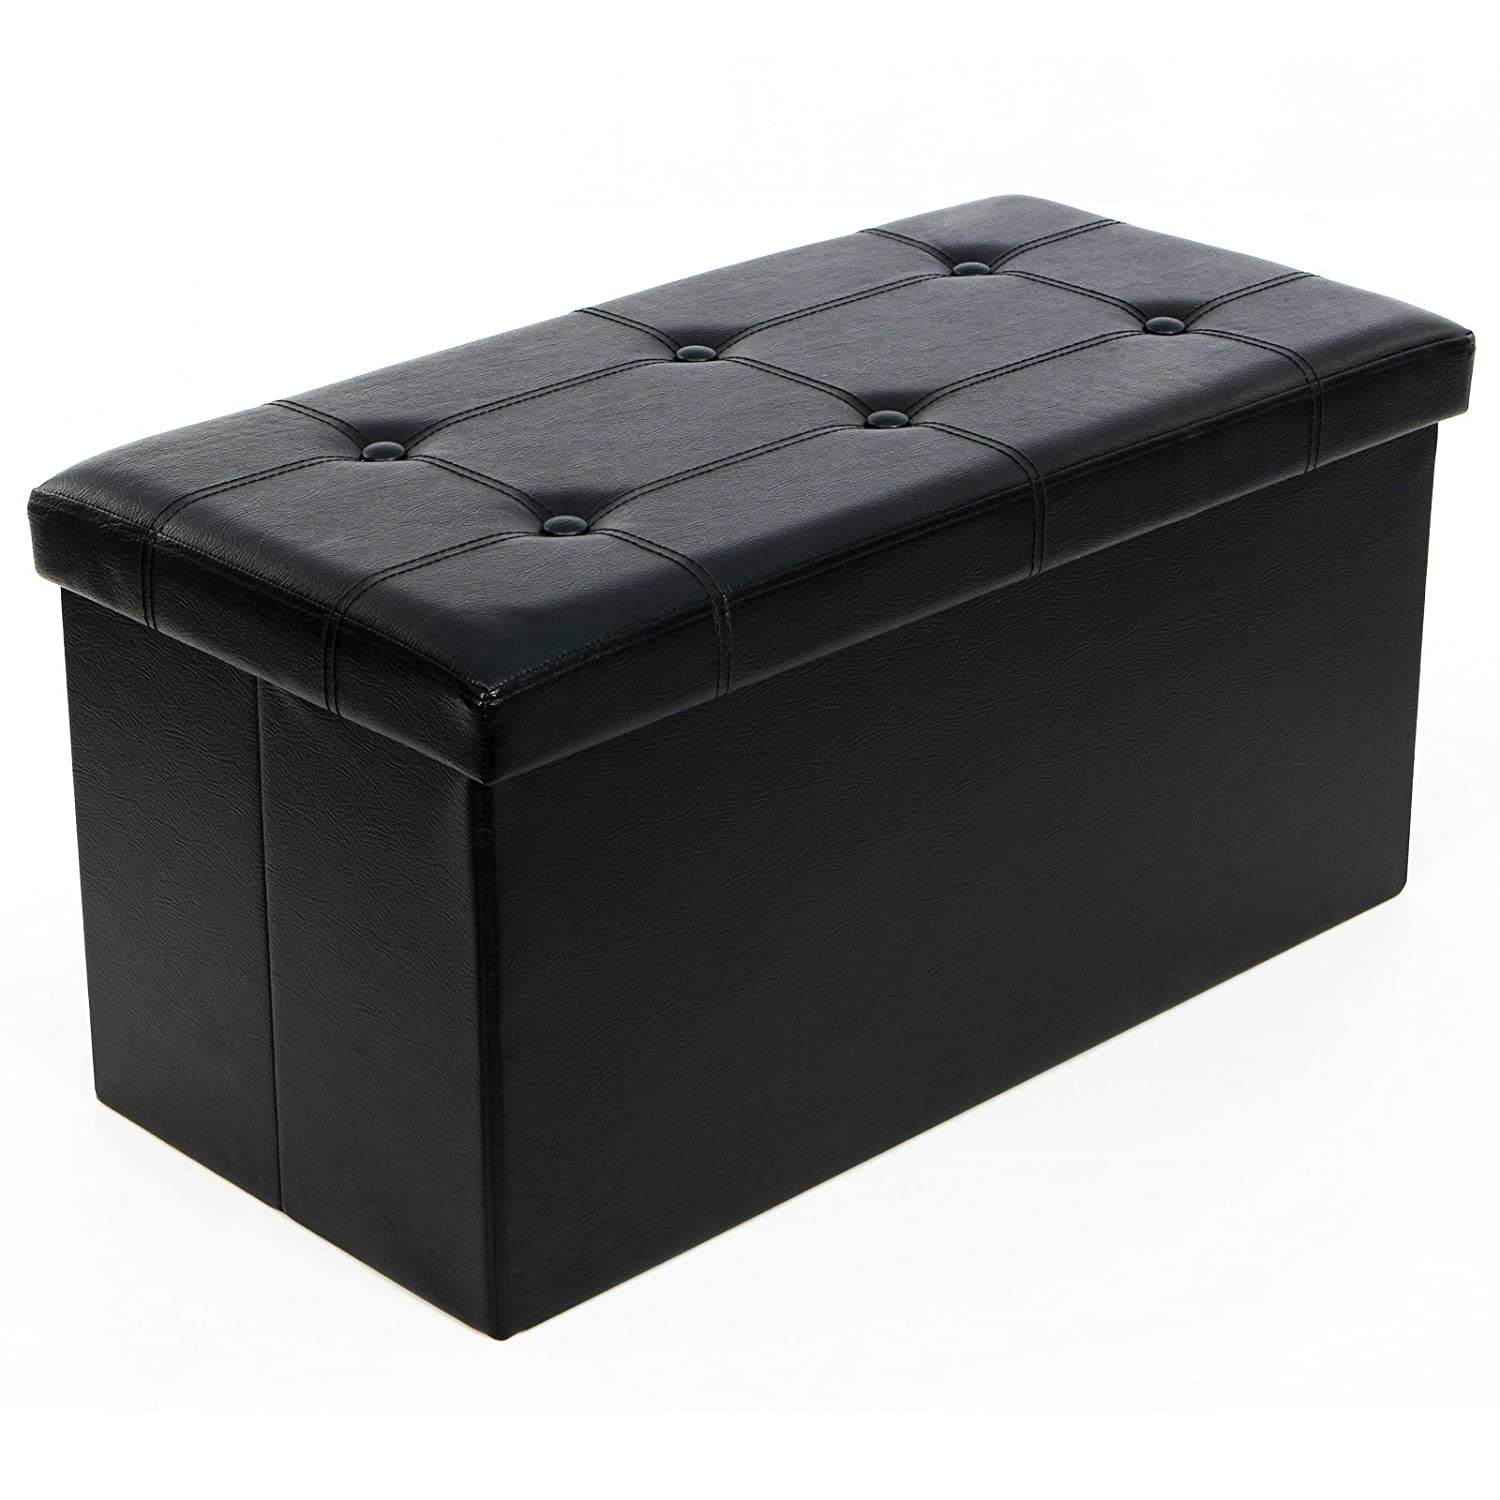 Awesome SONGMICS Folding Storage Ottoman Coffee Table Foot Rest Stool, Faux Leather,  Black ULSF105